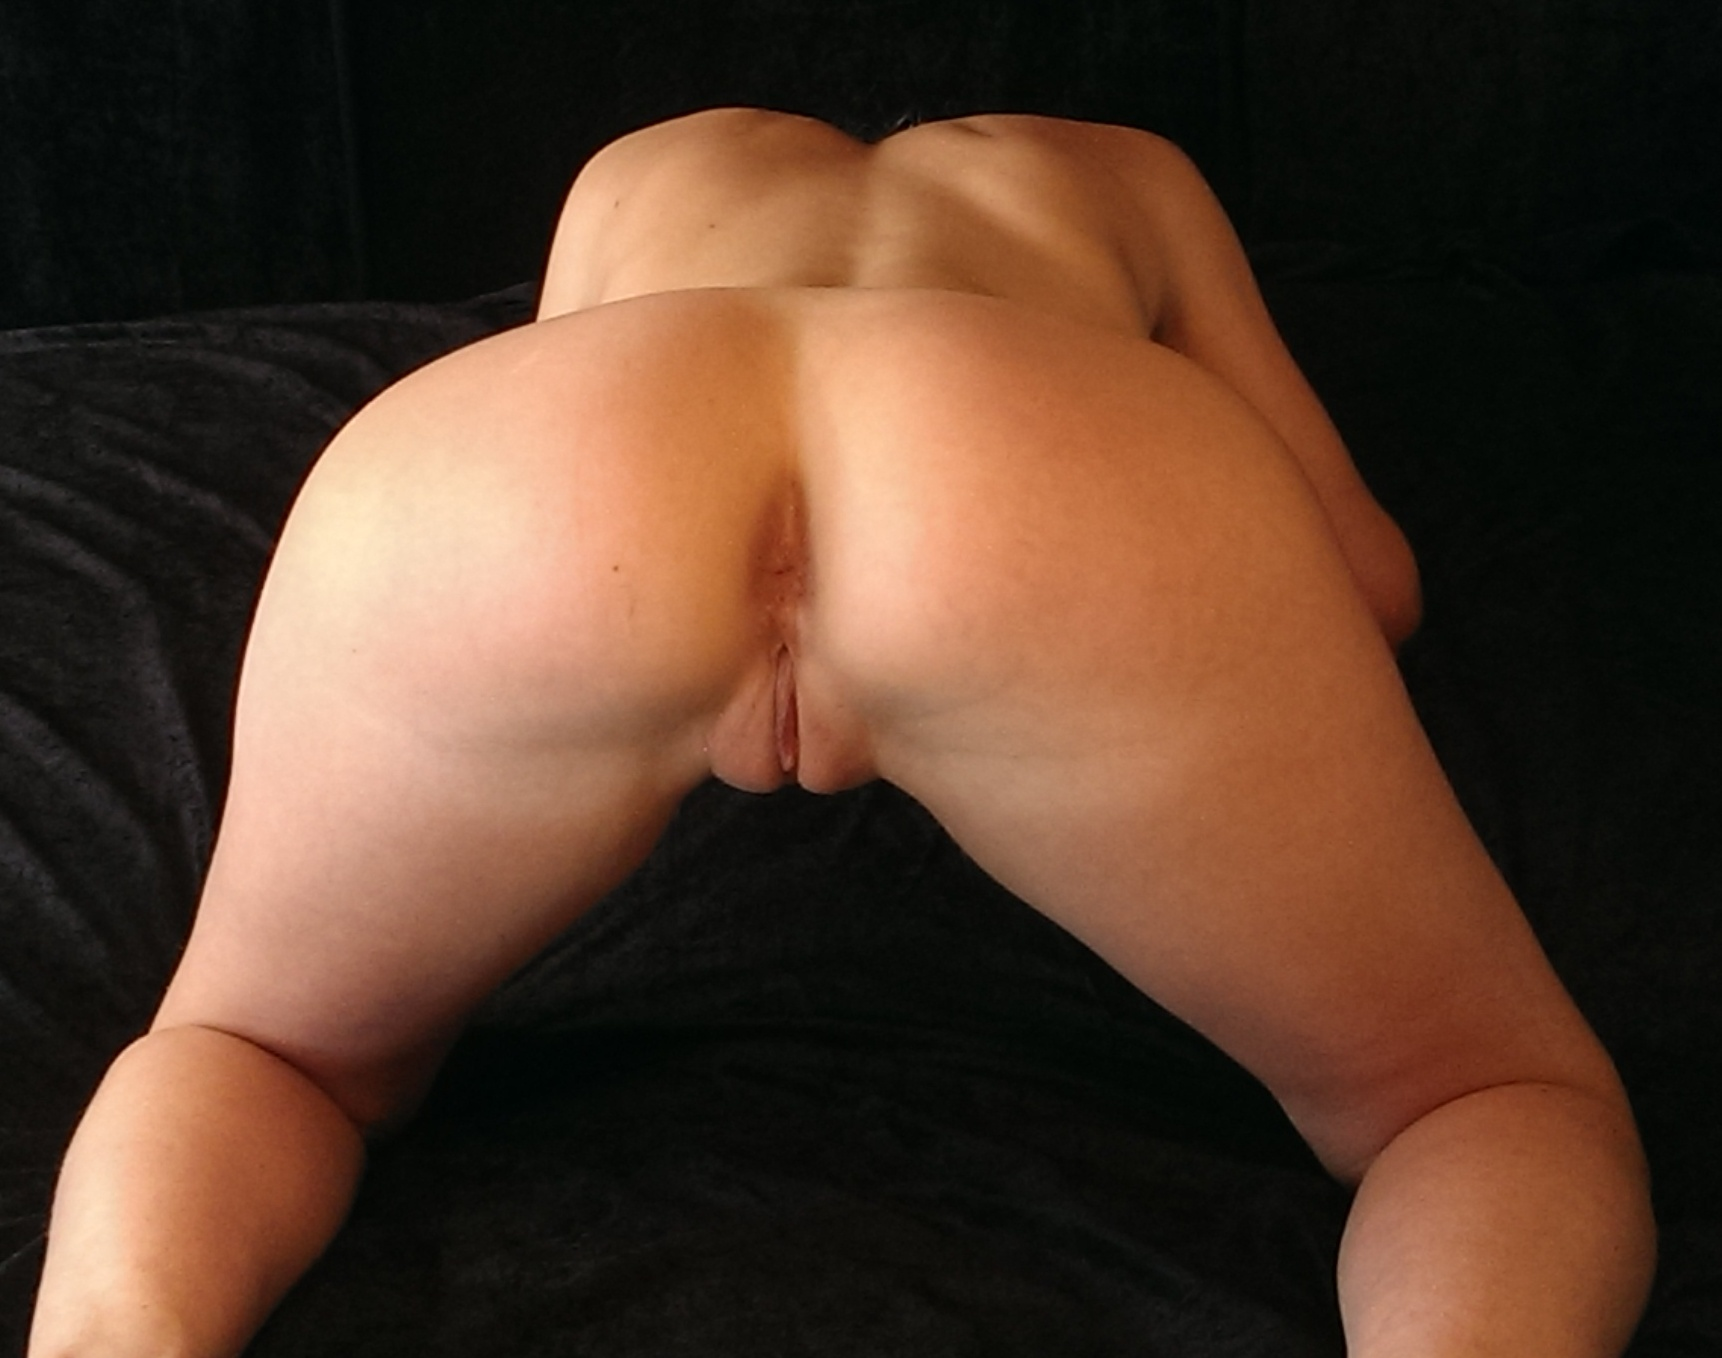 escort sex massage dogging i jylland